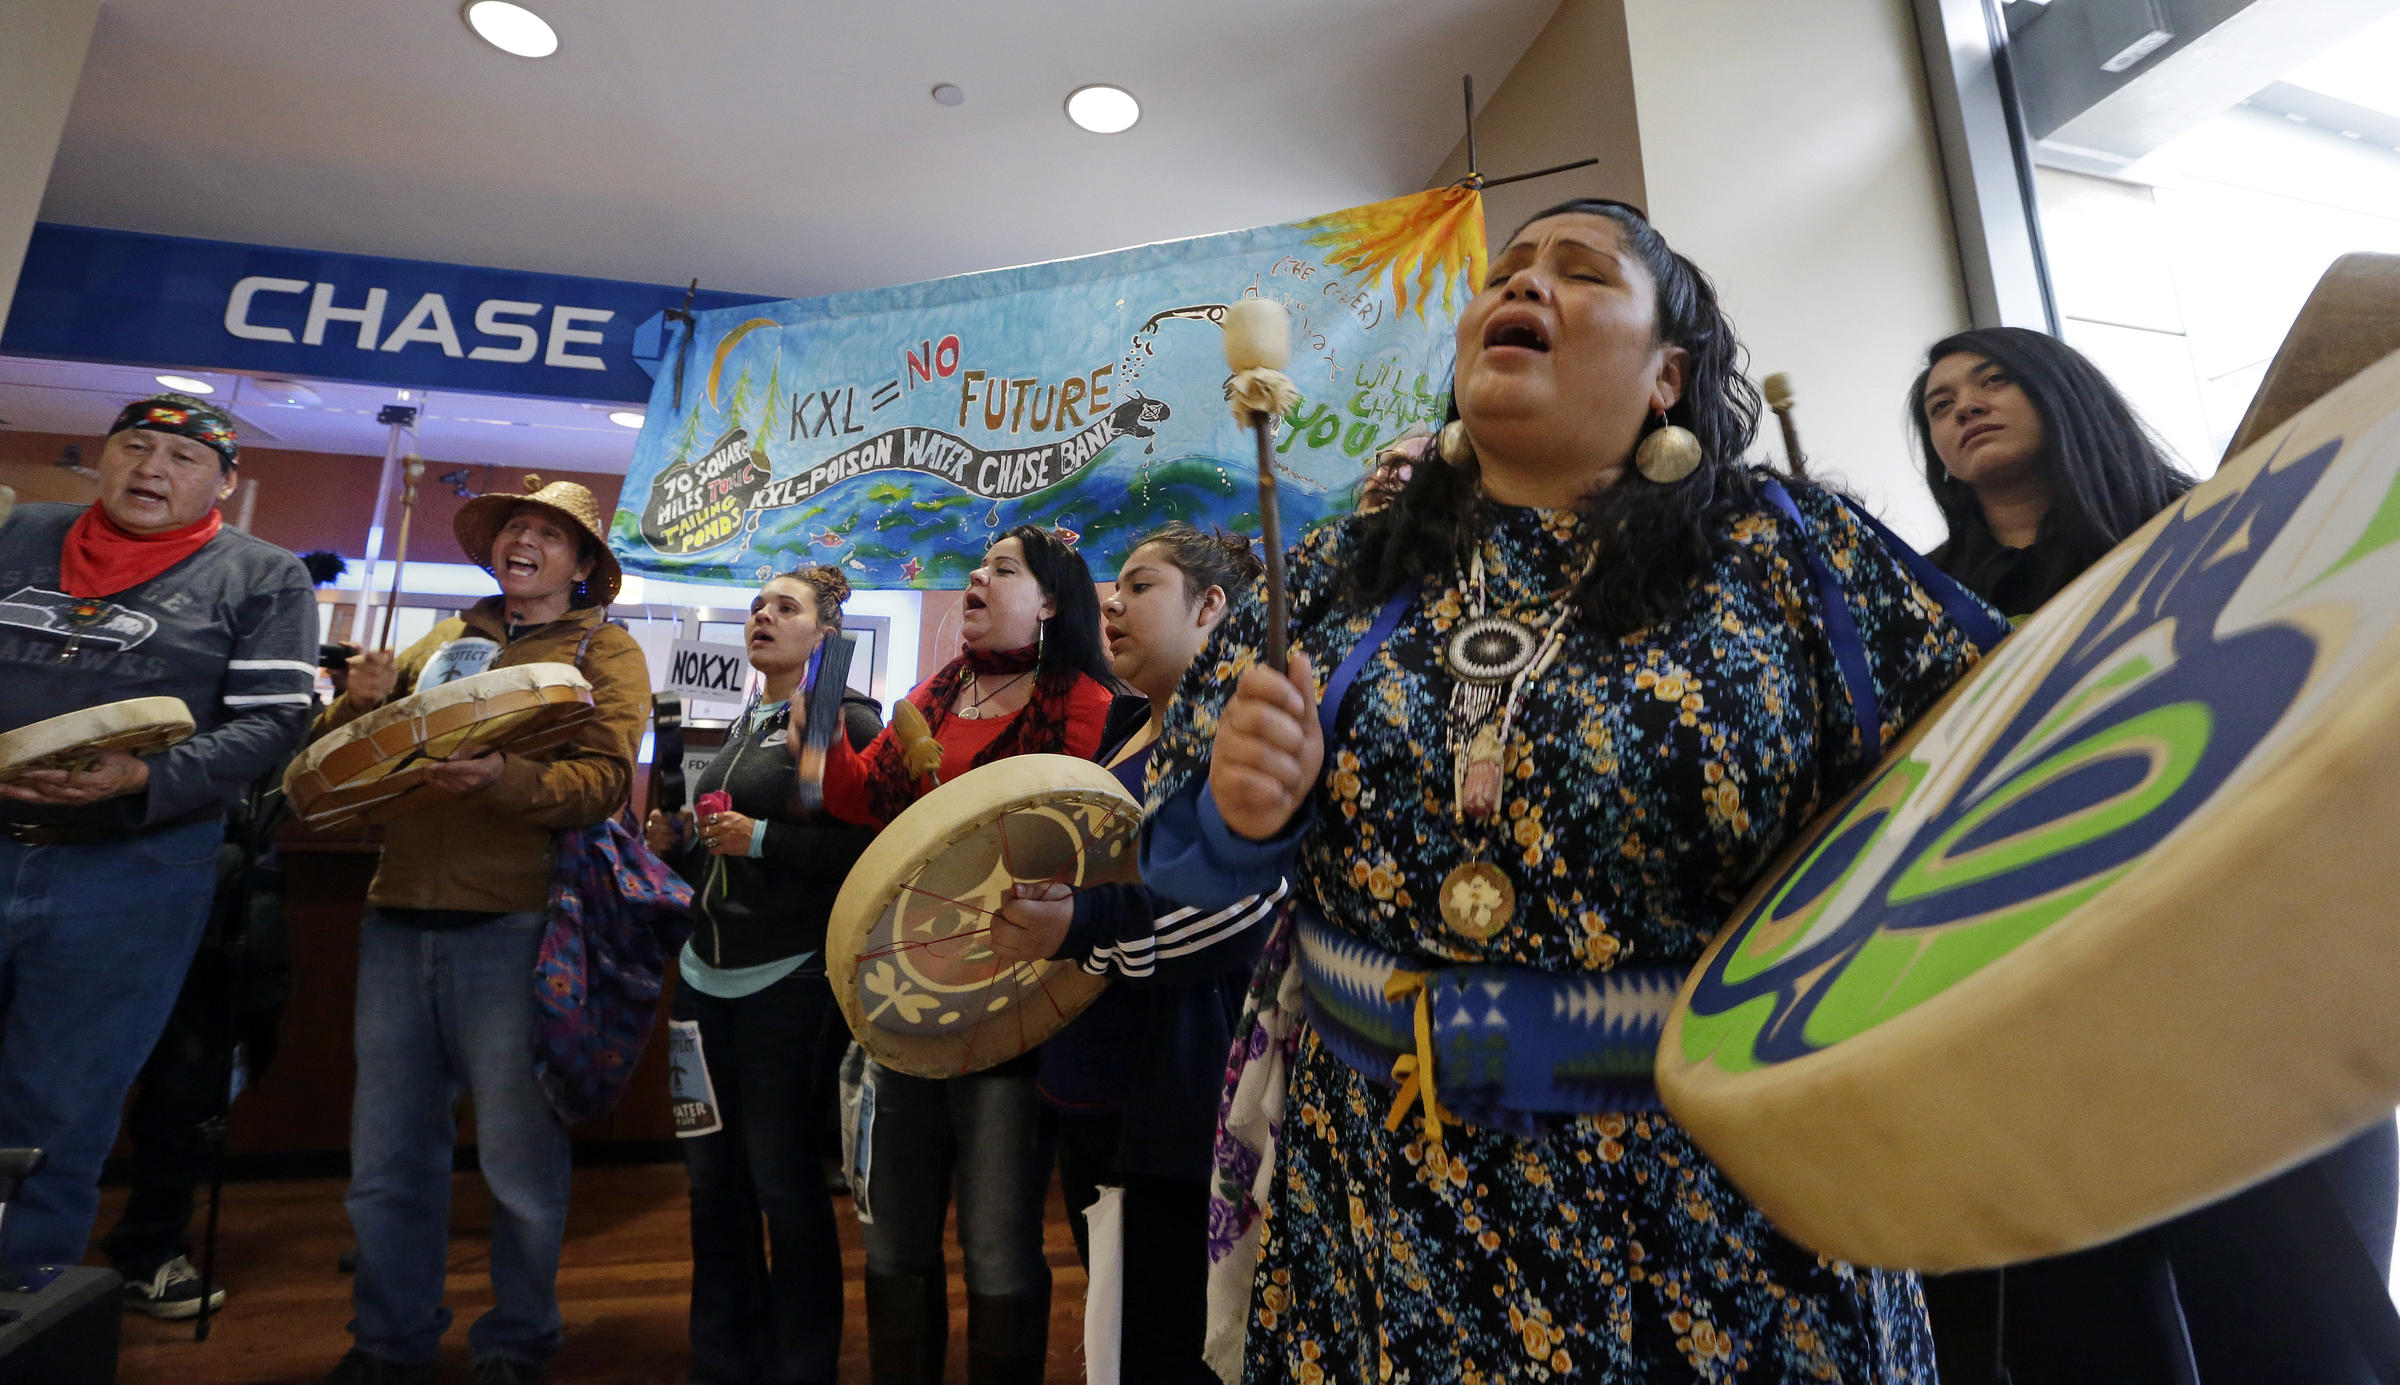 Roxanne White, right, a member of the Yakama Nation, sings during a protest  inside a Chase bank branch Monday, May 8, 2017, in Seattle.